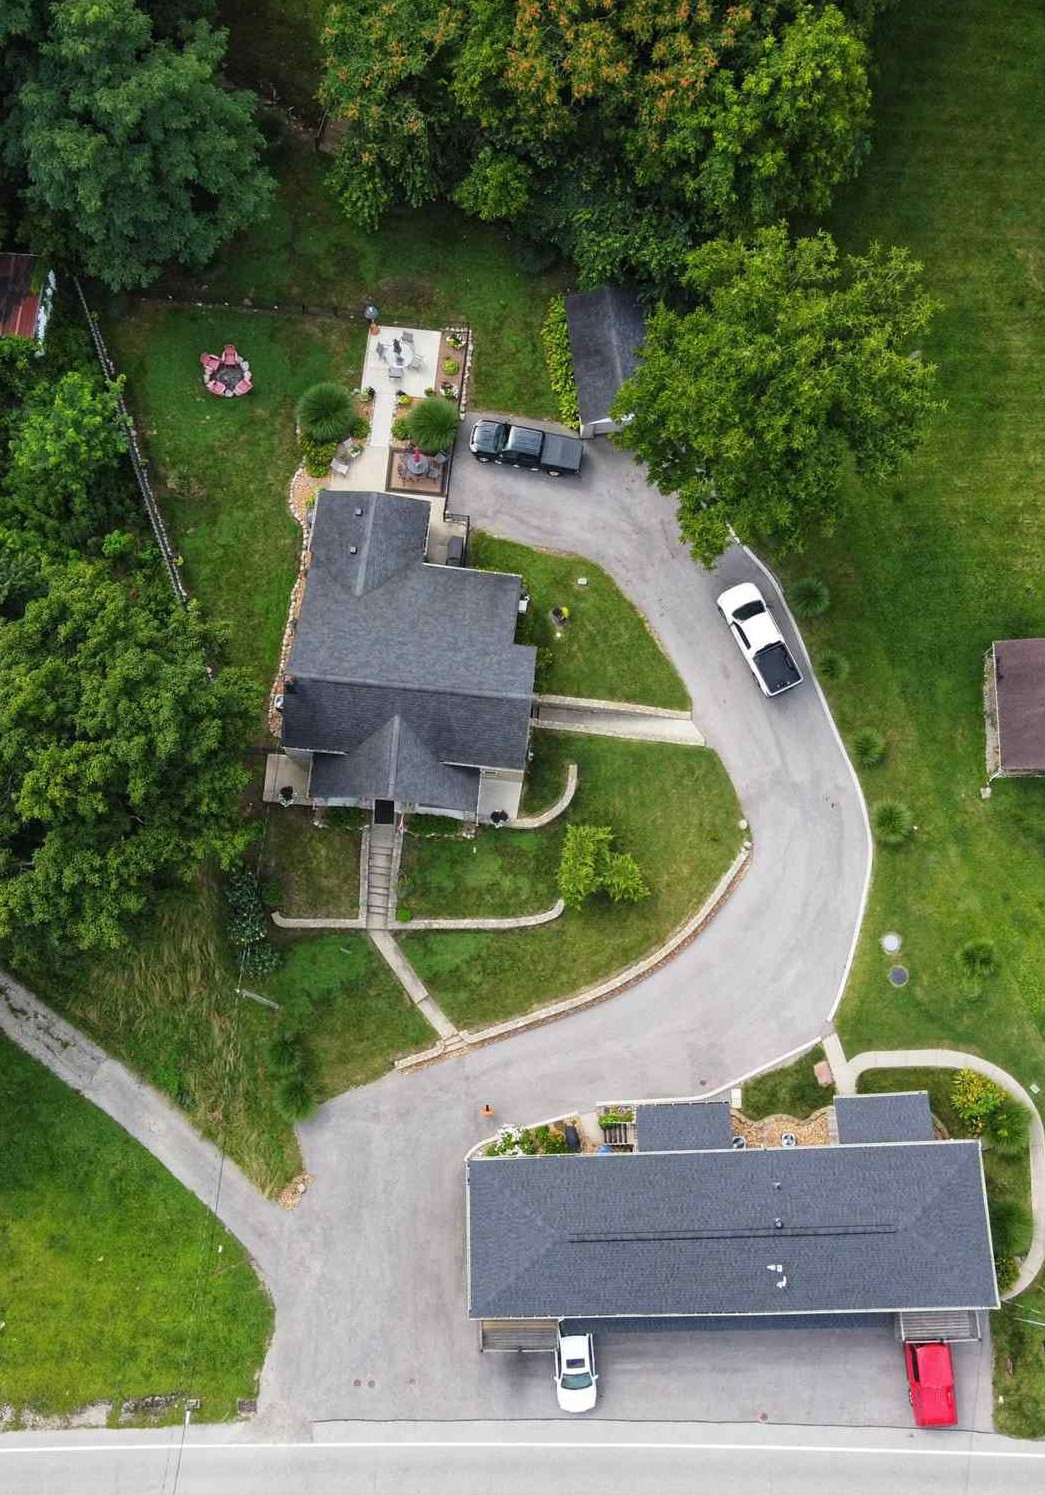 435 River Road Bromley, KY